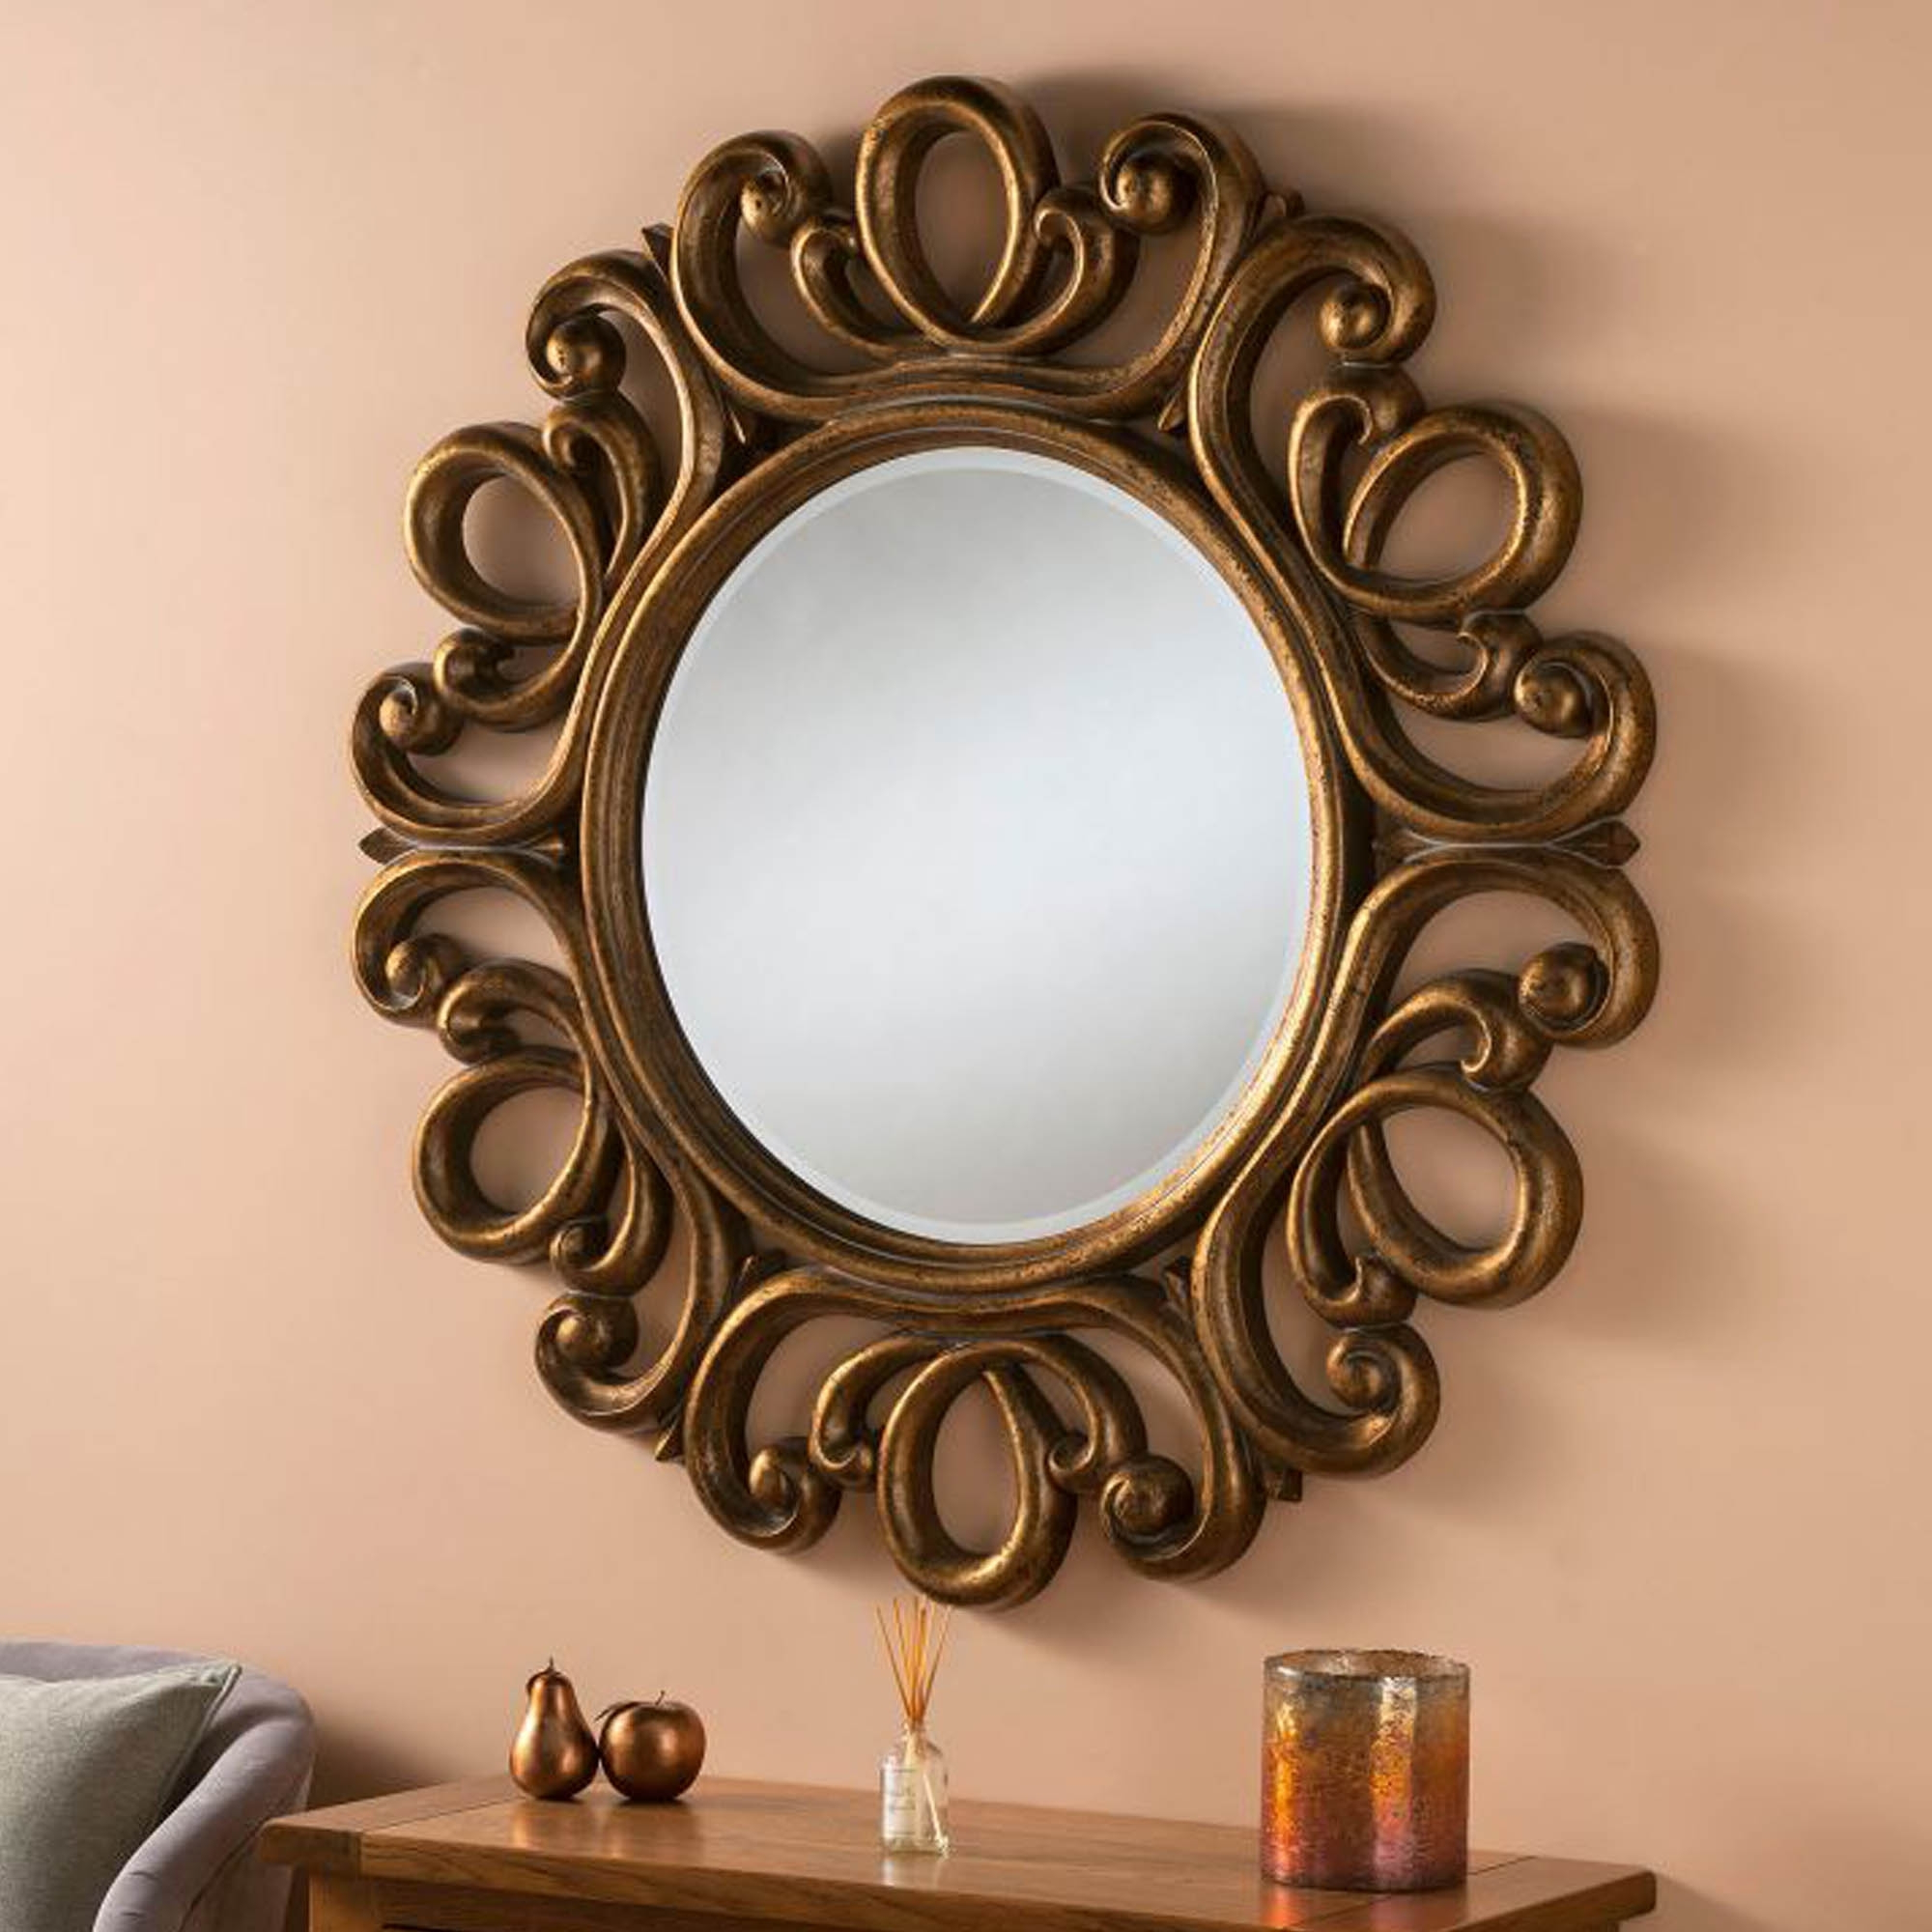 Swirl Wall Mirrors In Popular Antique Gold Swirl Ornate Wall Mirror (Gallery 15 of 20)